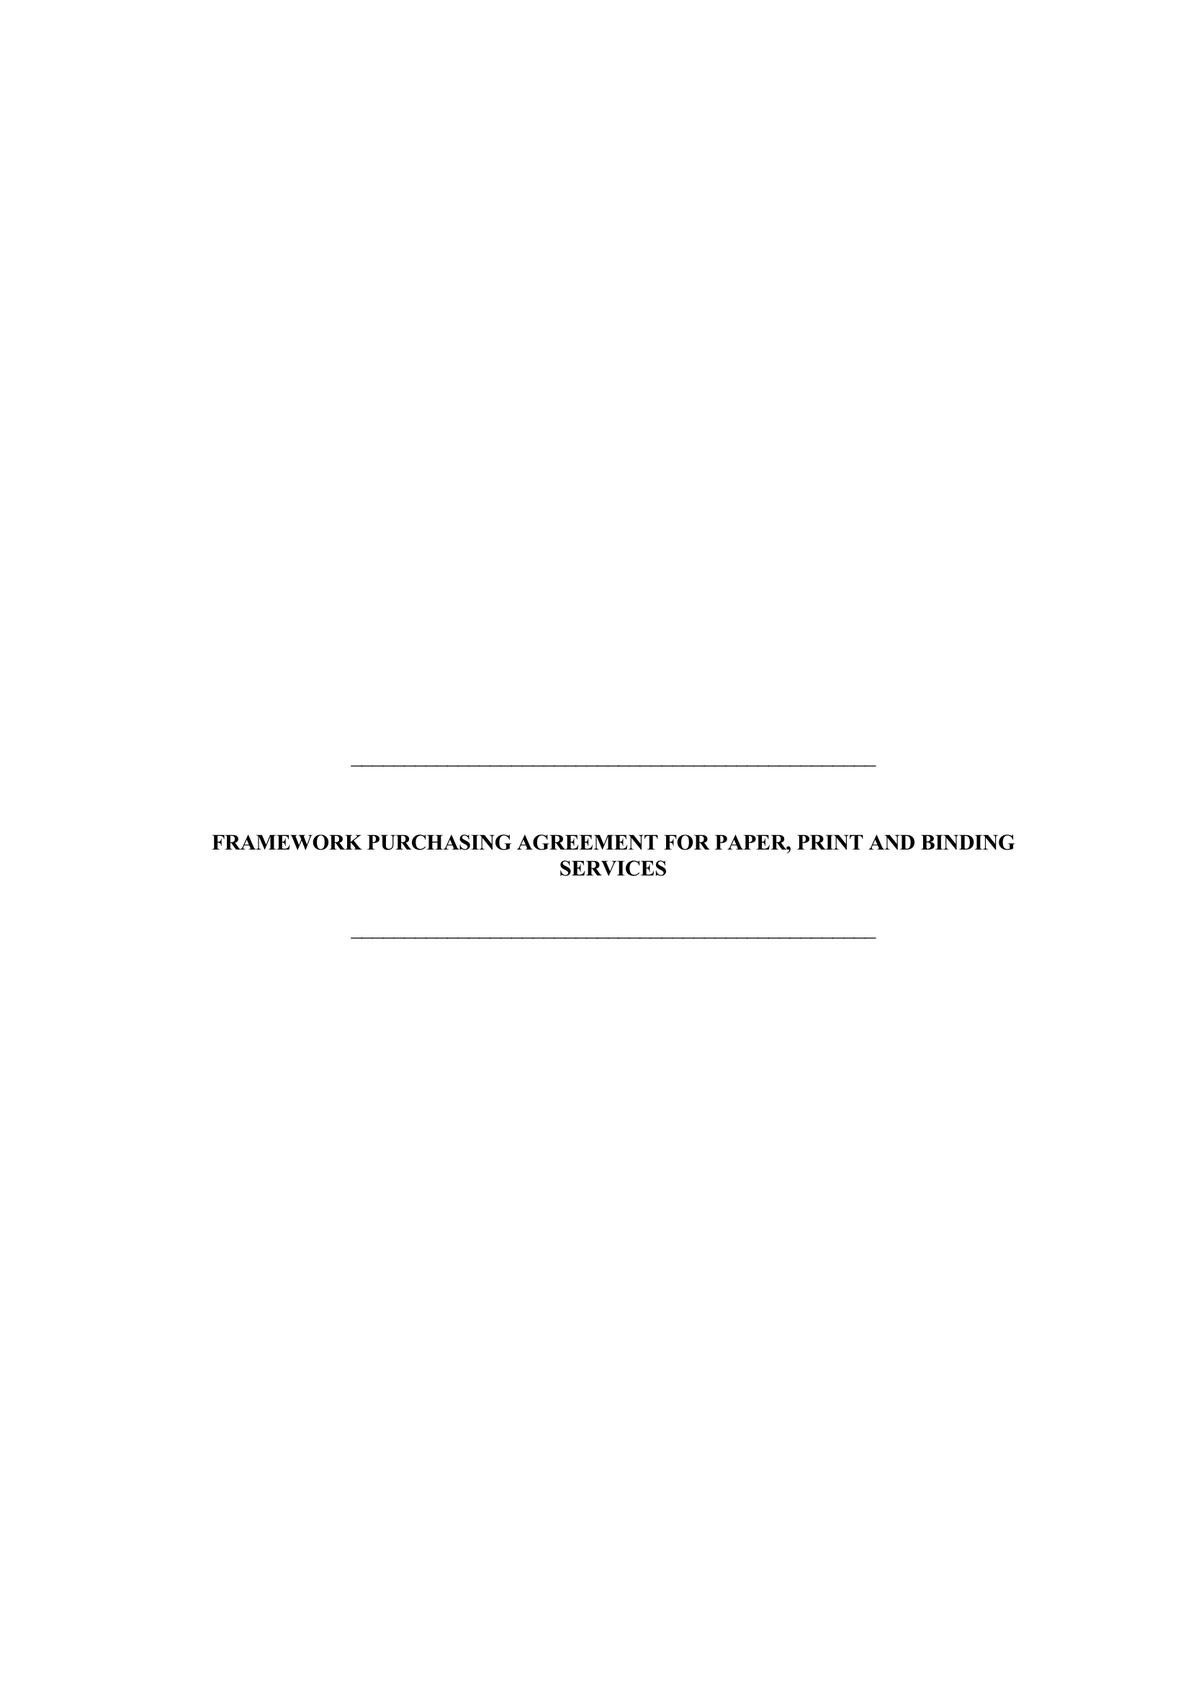 Framework Purchasing Agreement for paper, print and binding services-0